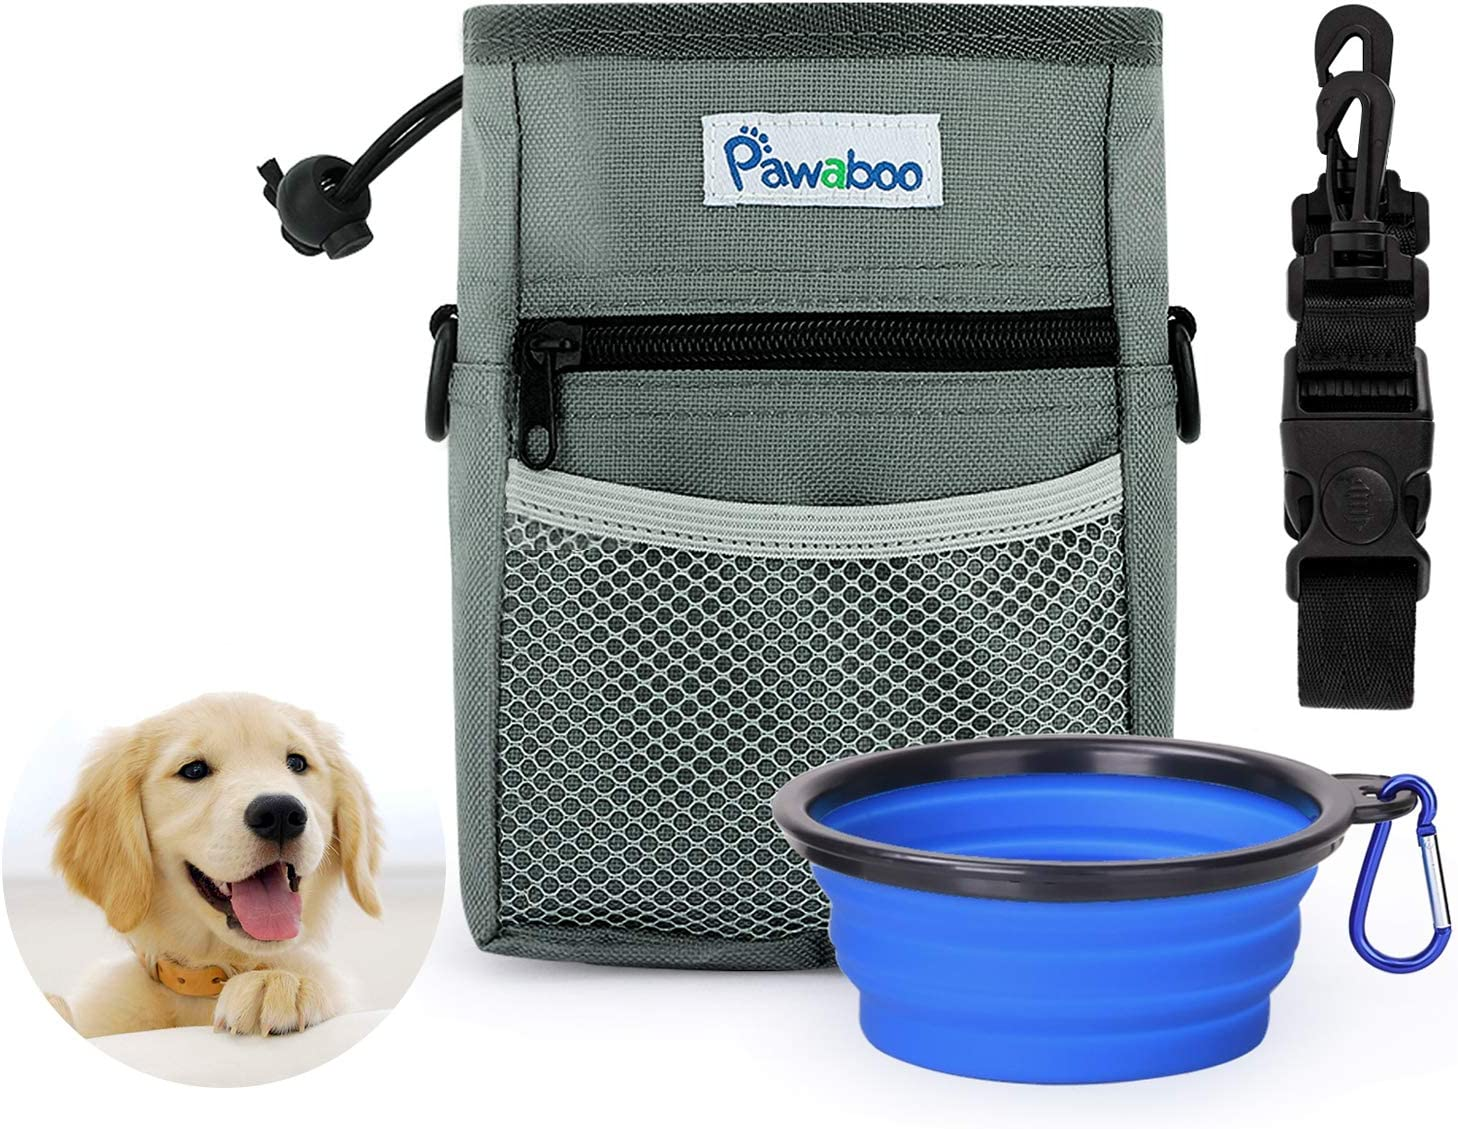 Dog Treat Pouch for Training Reward Walking Snack Bags Reward Pouch Bait Bag Water Bottle Carrier Holder With Adjustable Waist Belt Pet for Small to Large Dogs Treat Tote Carry Kibble Snacks Toys